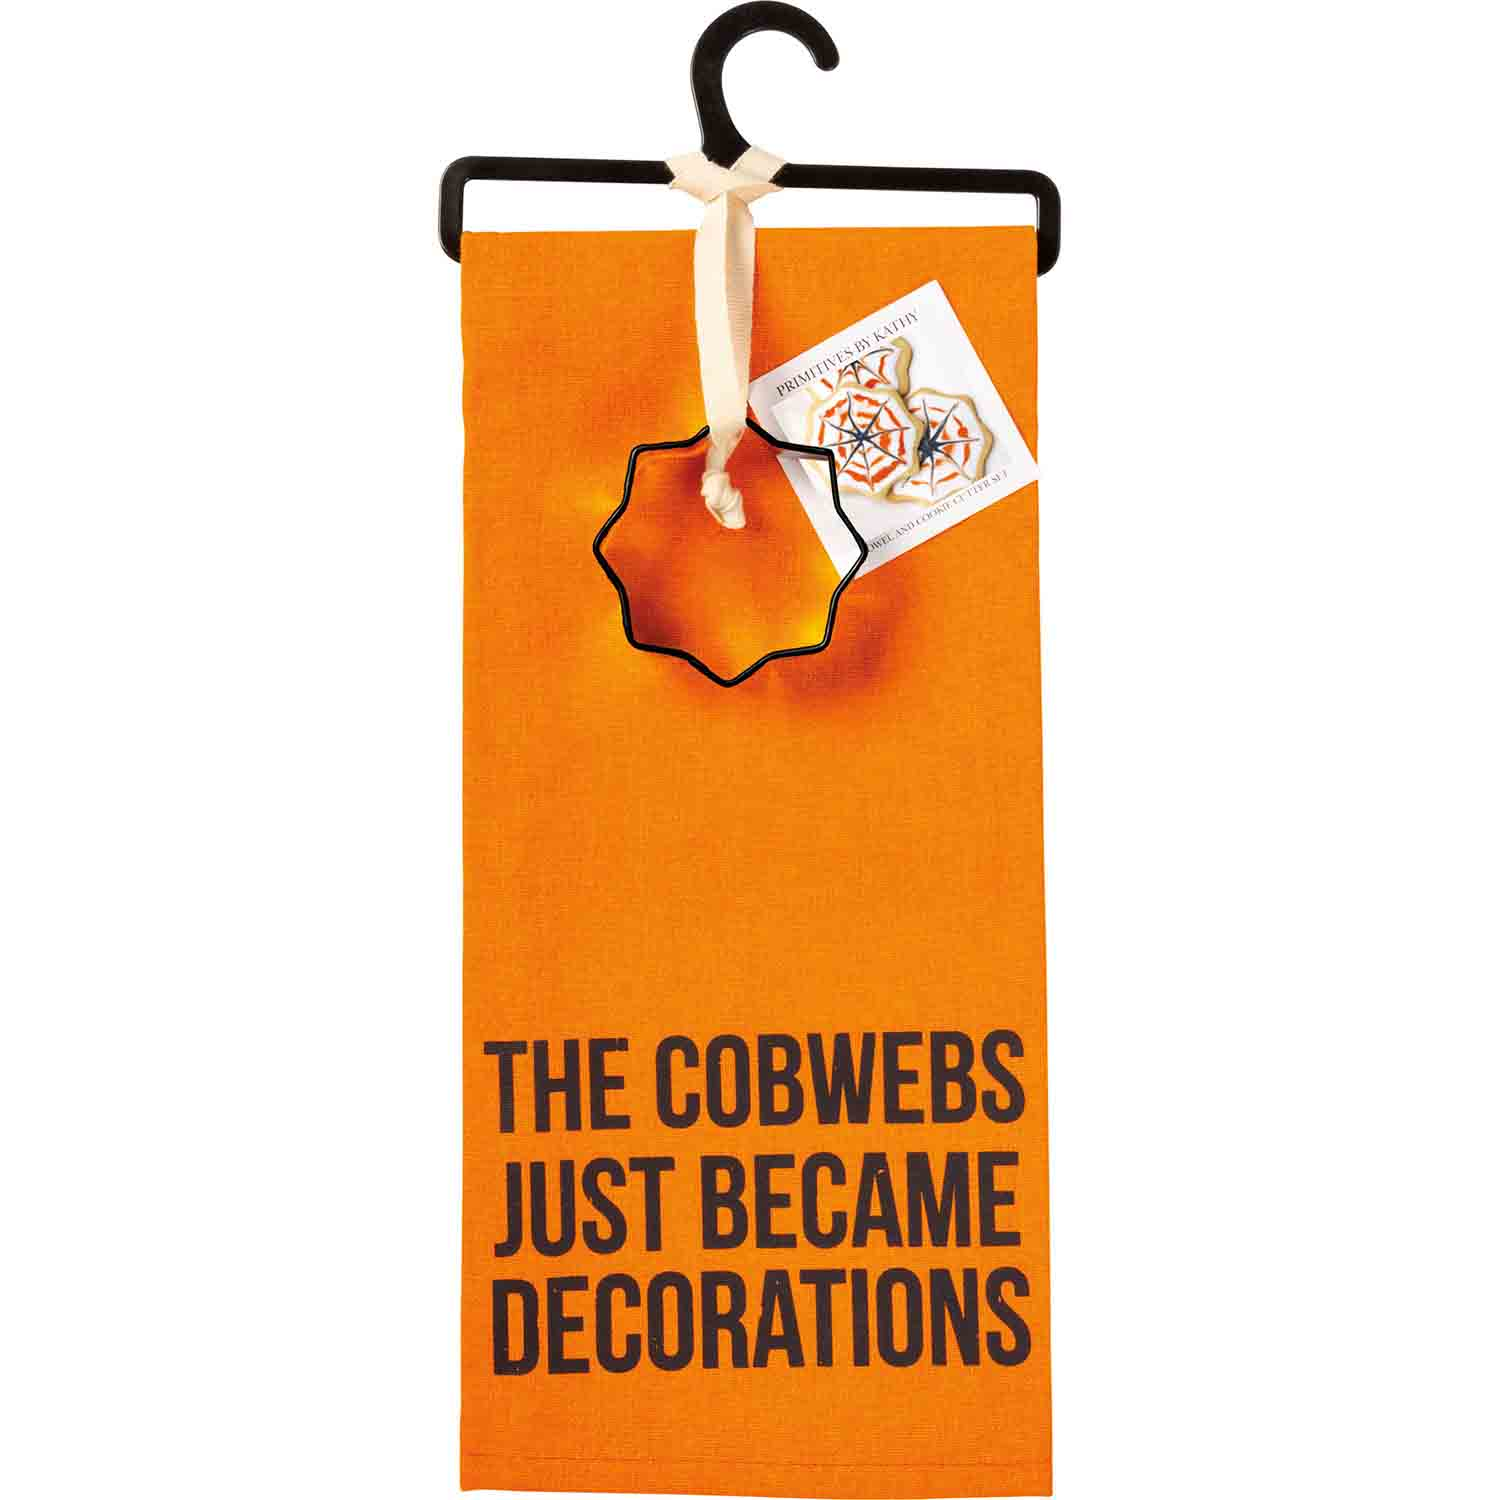 Cobwebs Become Decorations Towel & Cutter Set